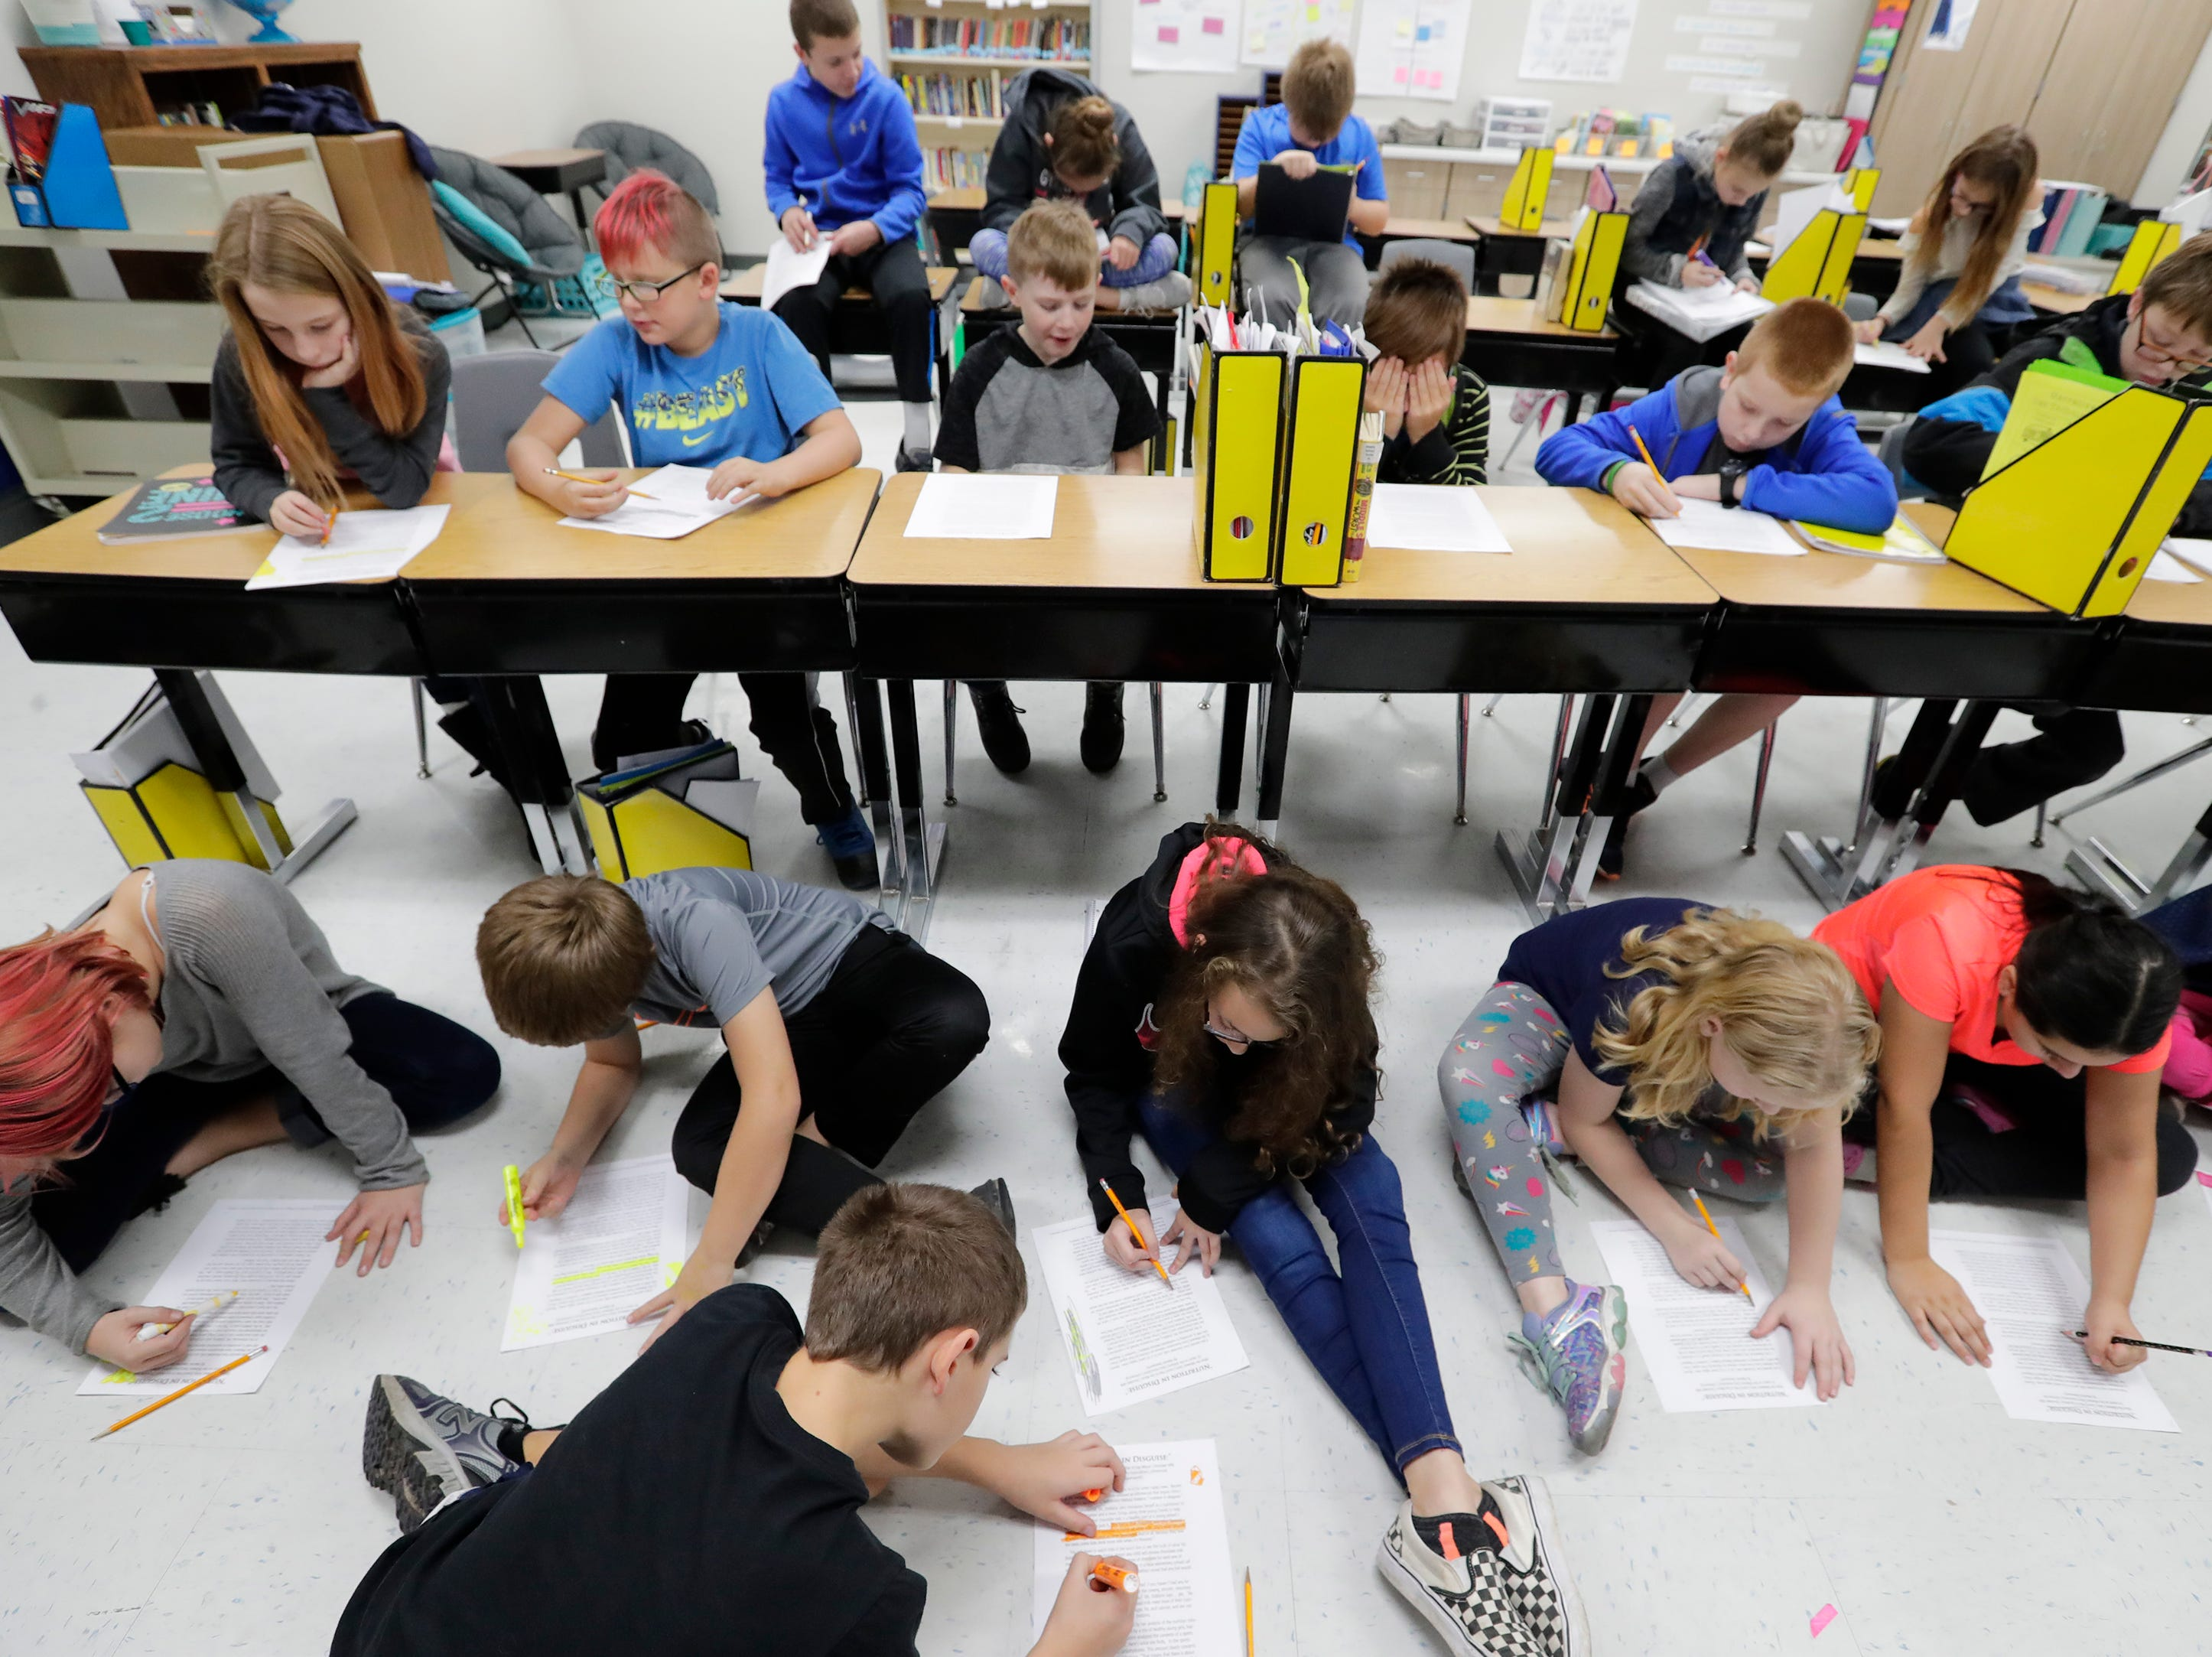 Allison Johnson's fifth grade class works on a project in their new room in the Little Chute Intermediate School Tuesday, November 6, 2018, in Little Chute, Wis. 